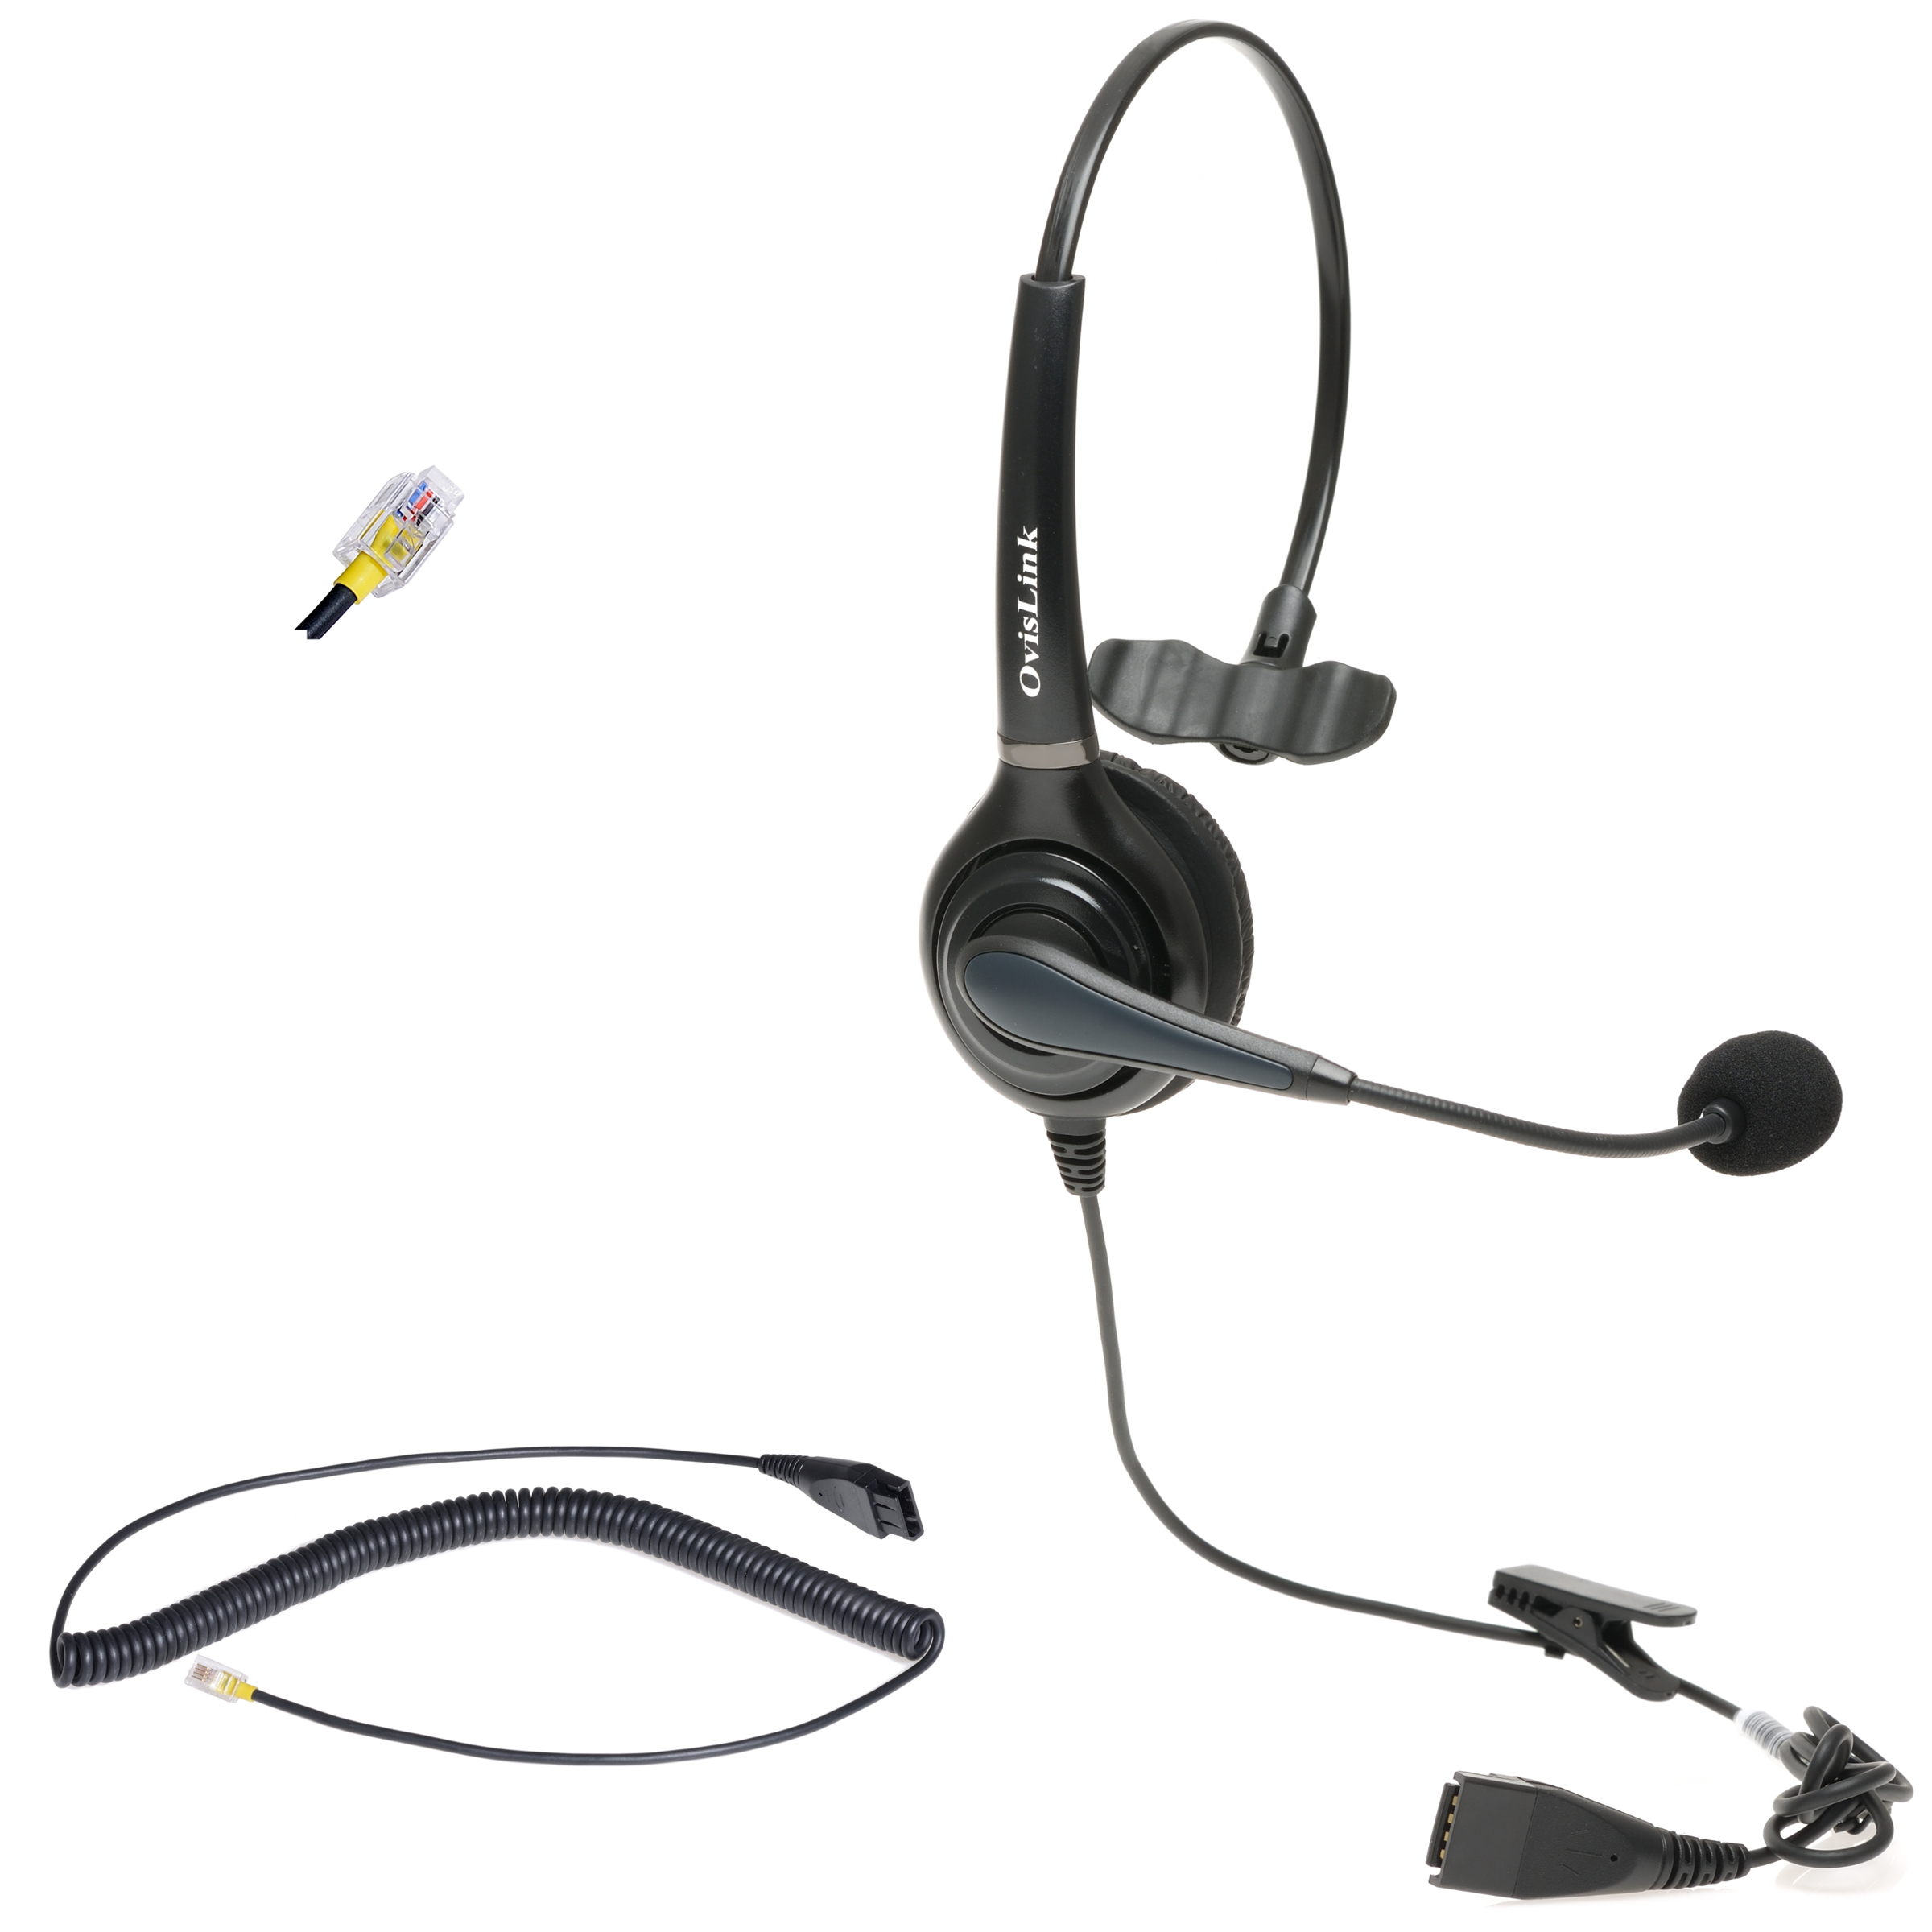 Ovislink Cisco Phone Headset With Rj9 Quick Disconnect Cord